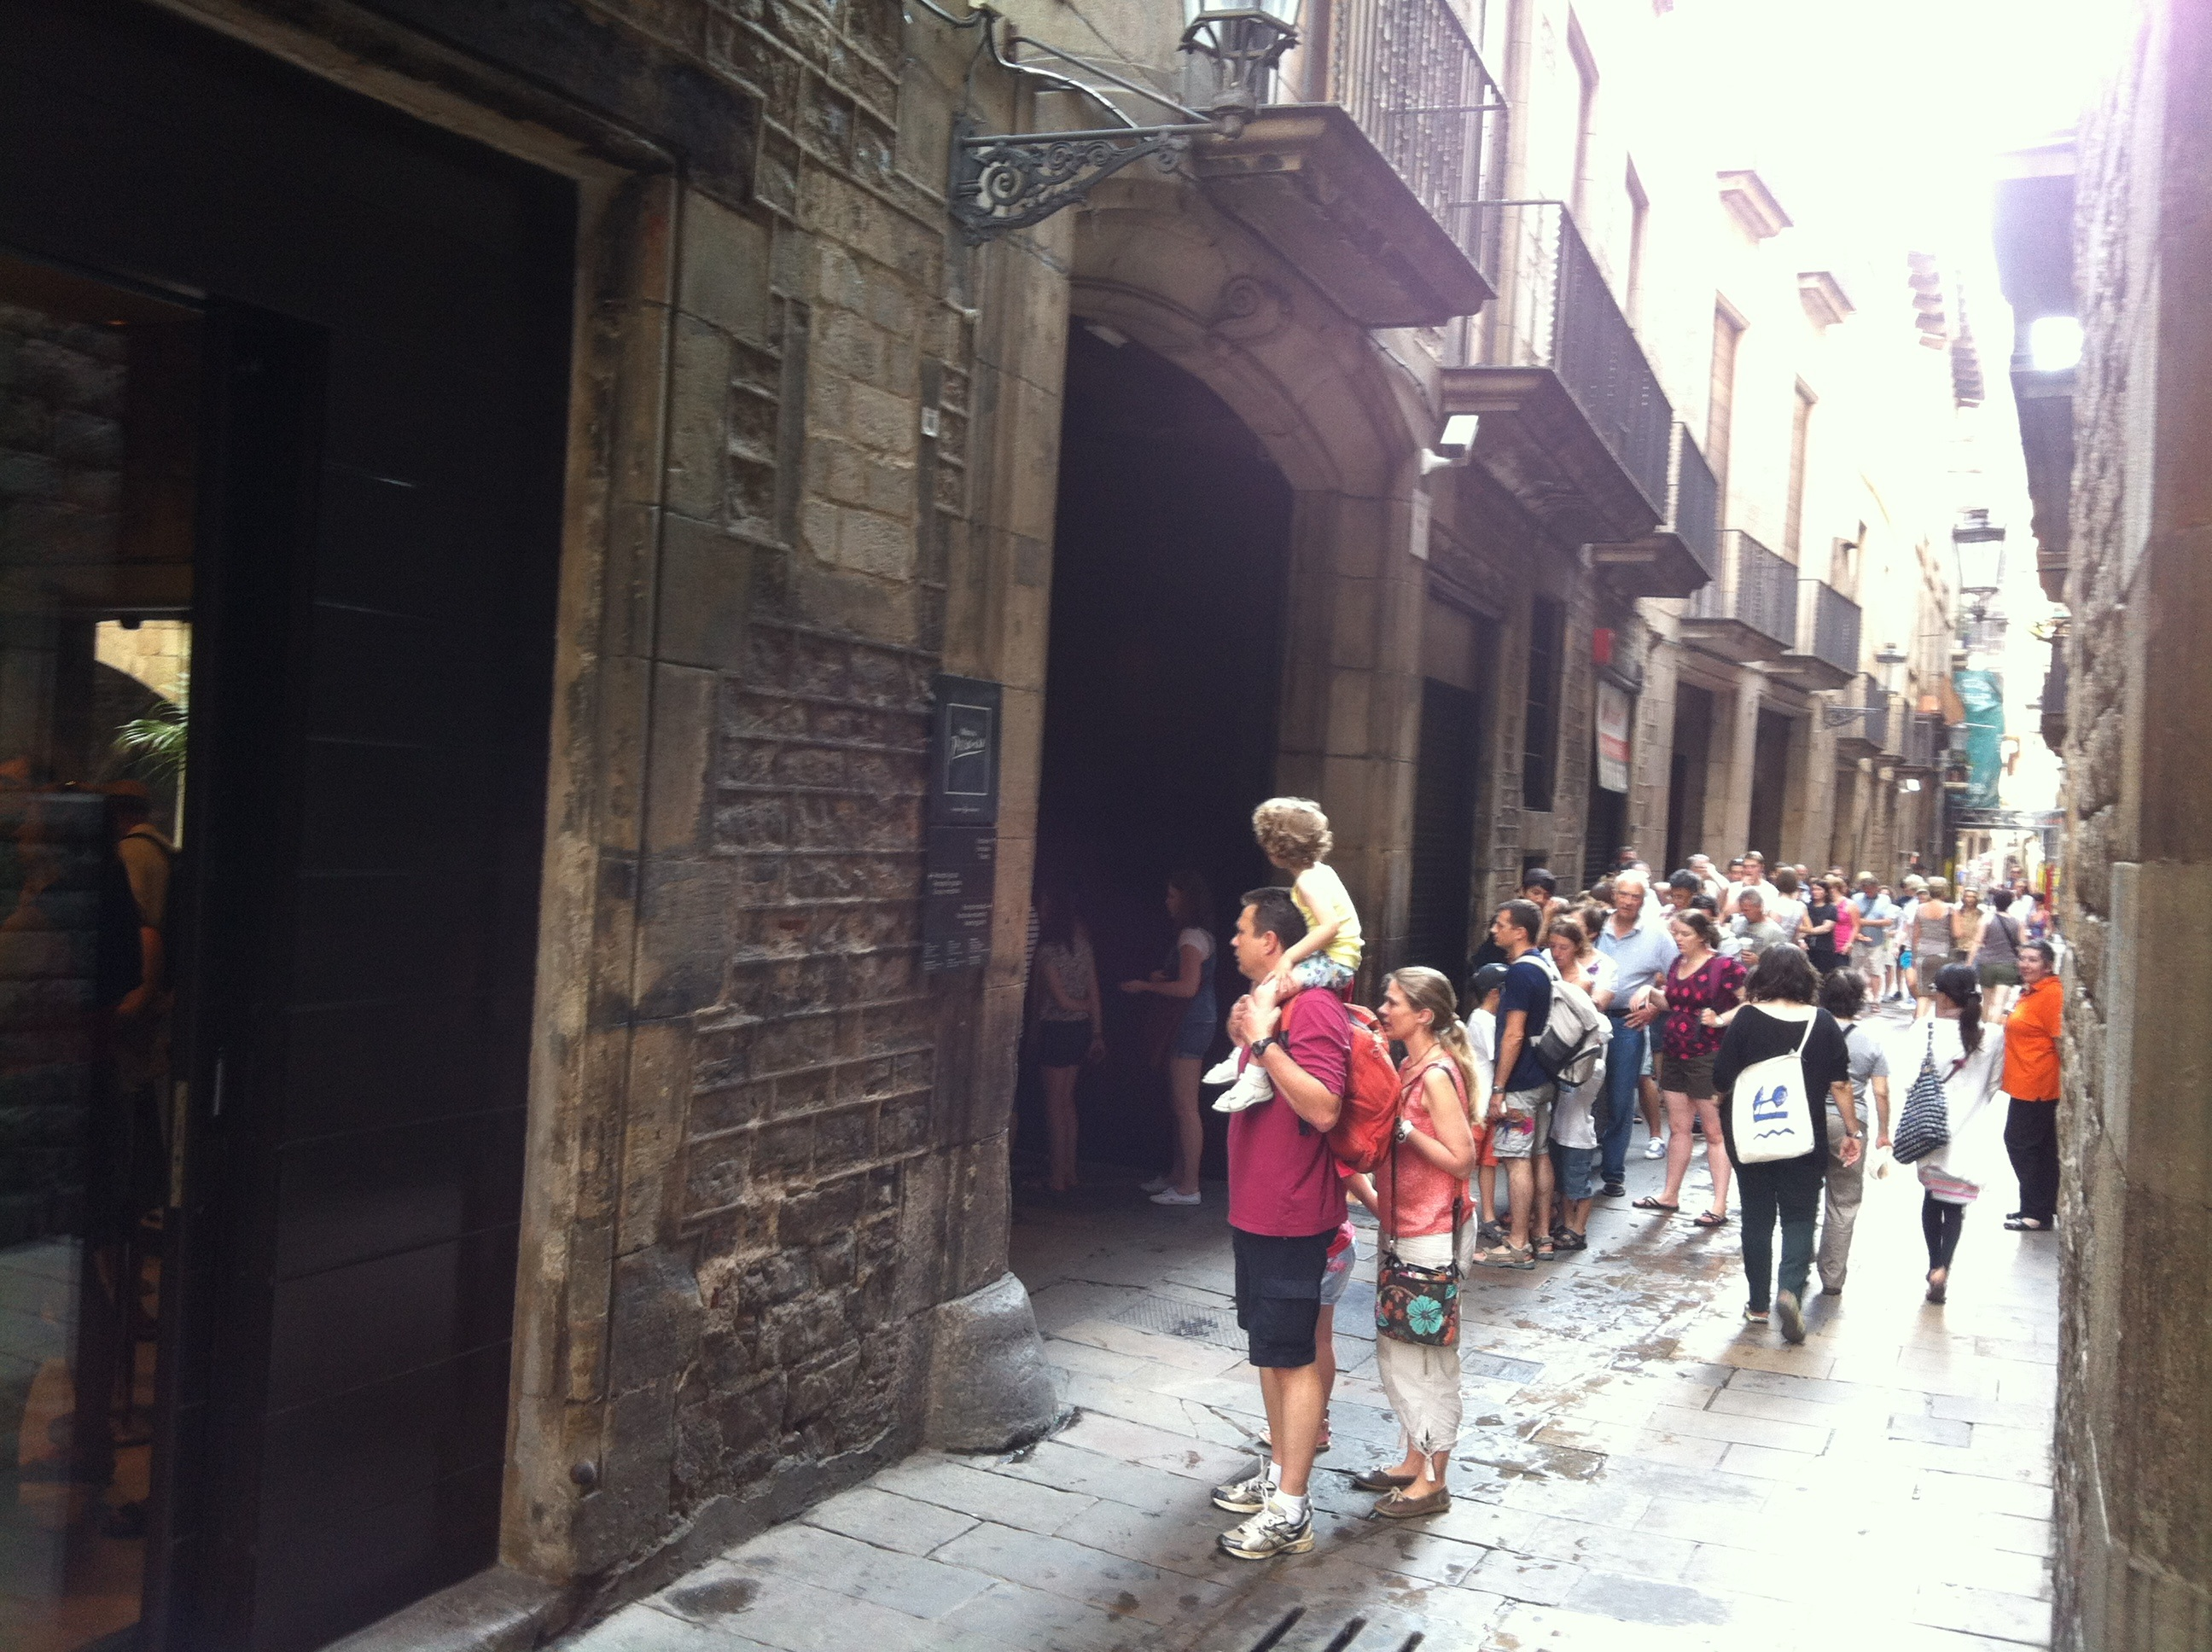 File:Museu Picasso Barcelona- queues.jpg - Wikimedia Commons